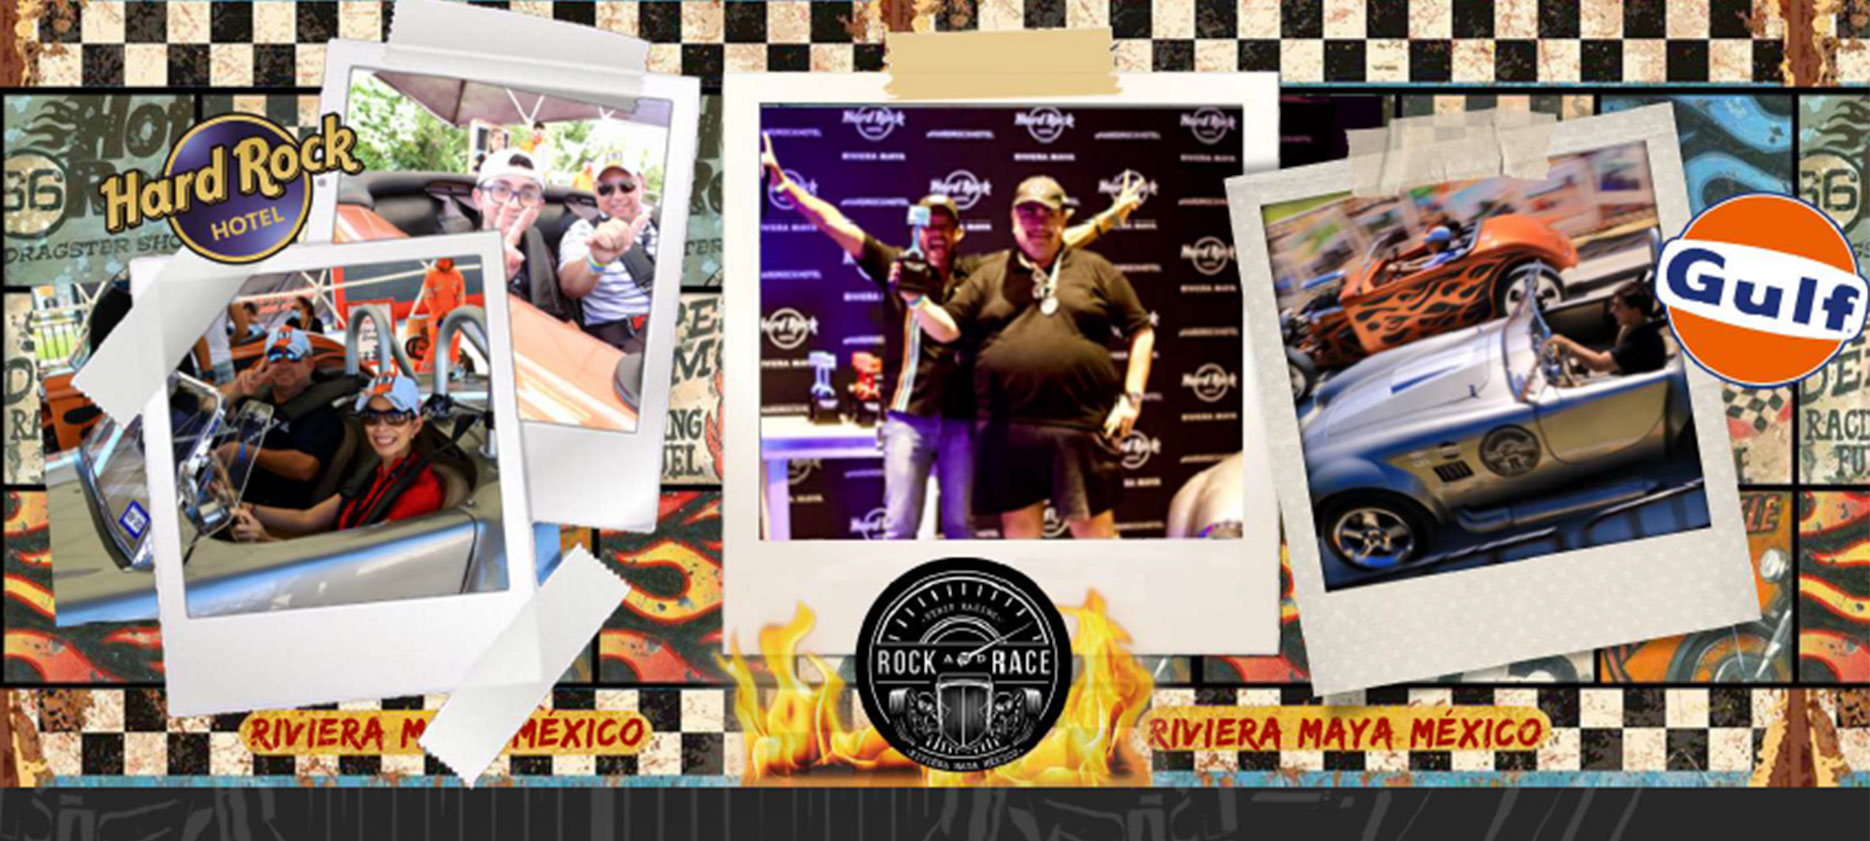 rock-and-race-evento